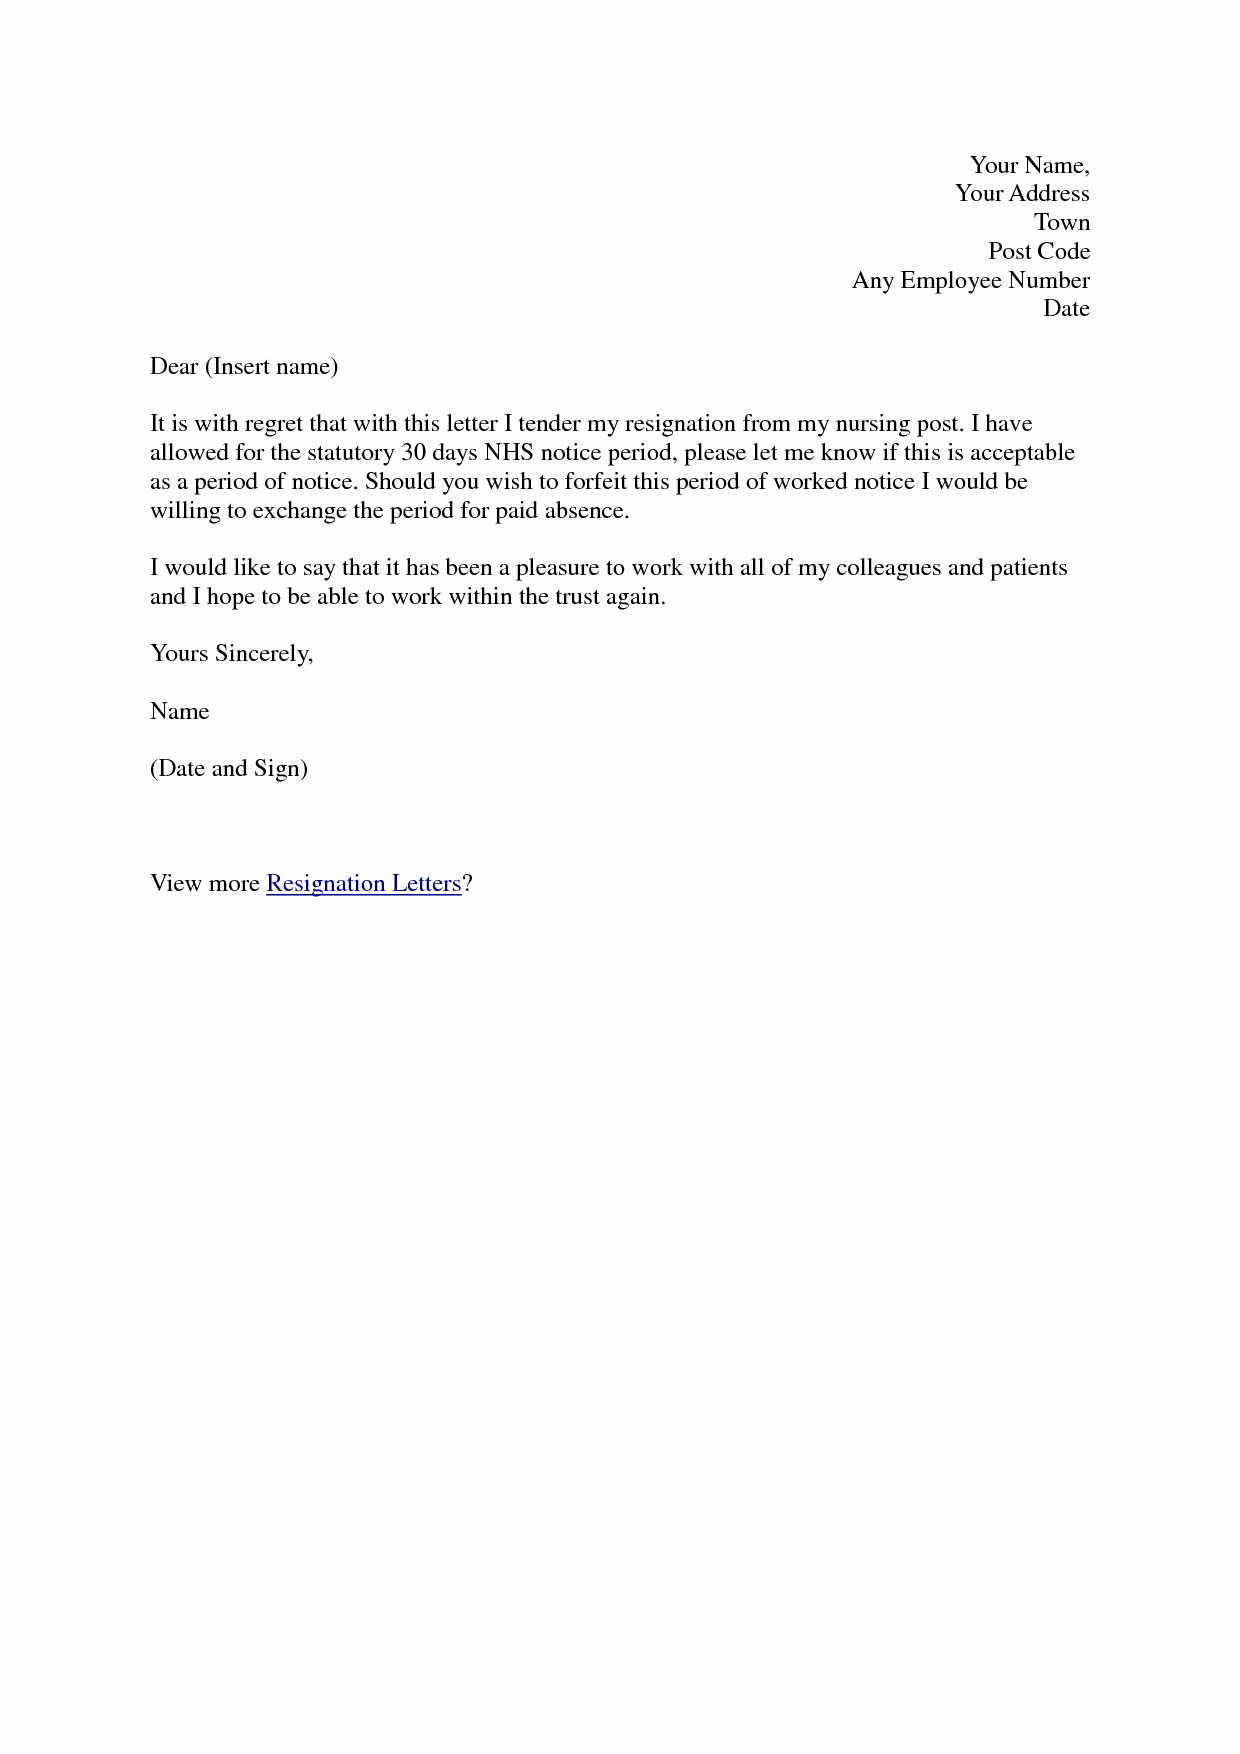 Formal Resignation Letter Samples Unique Best S Of formal Resignation Letter Sample formal